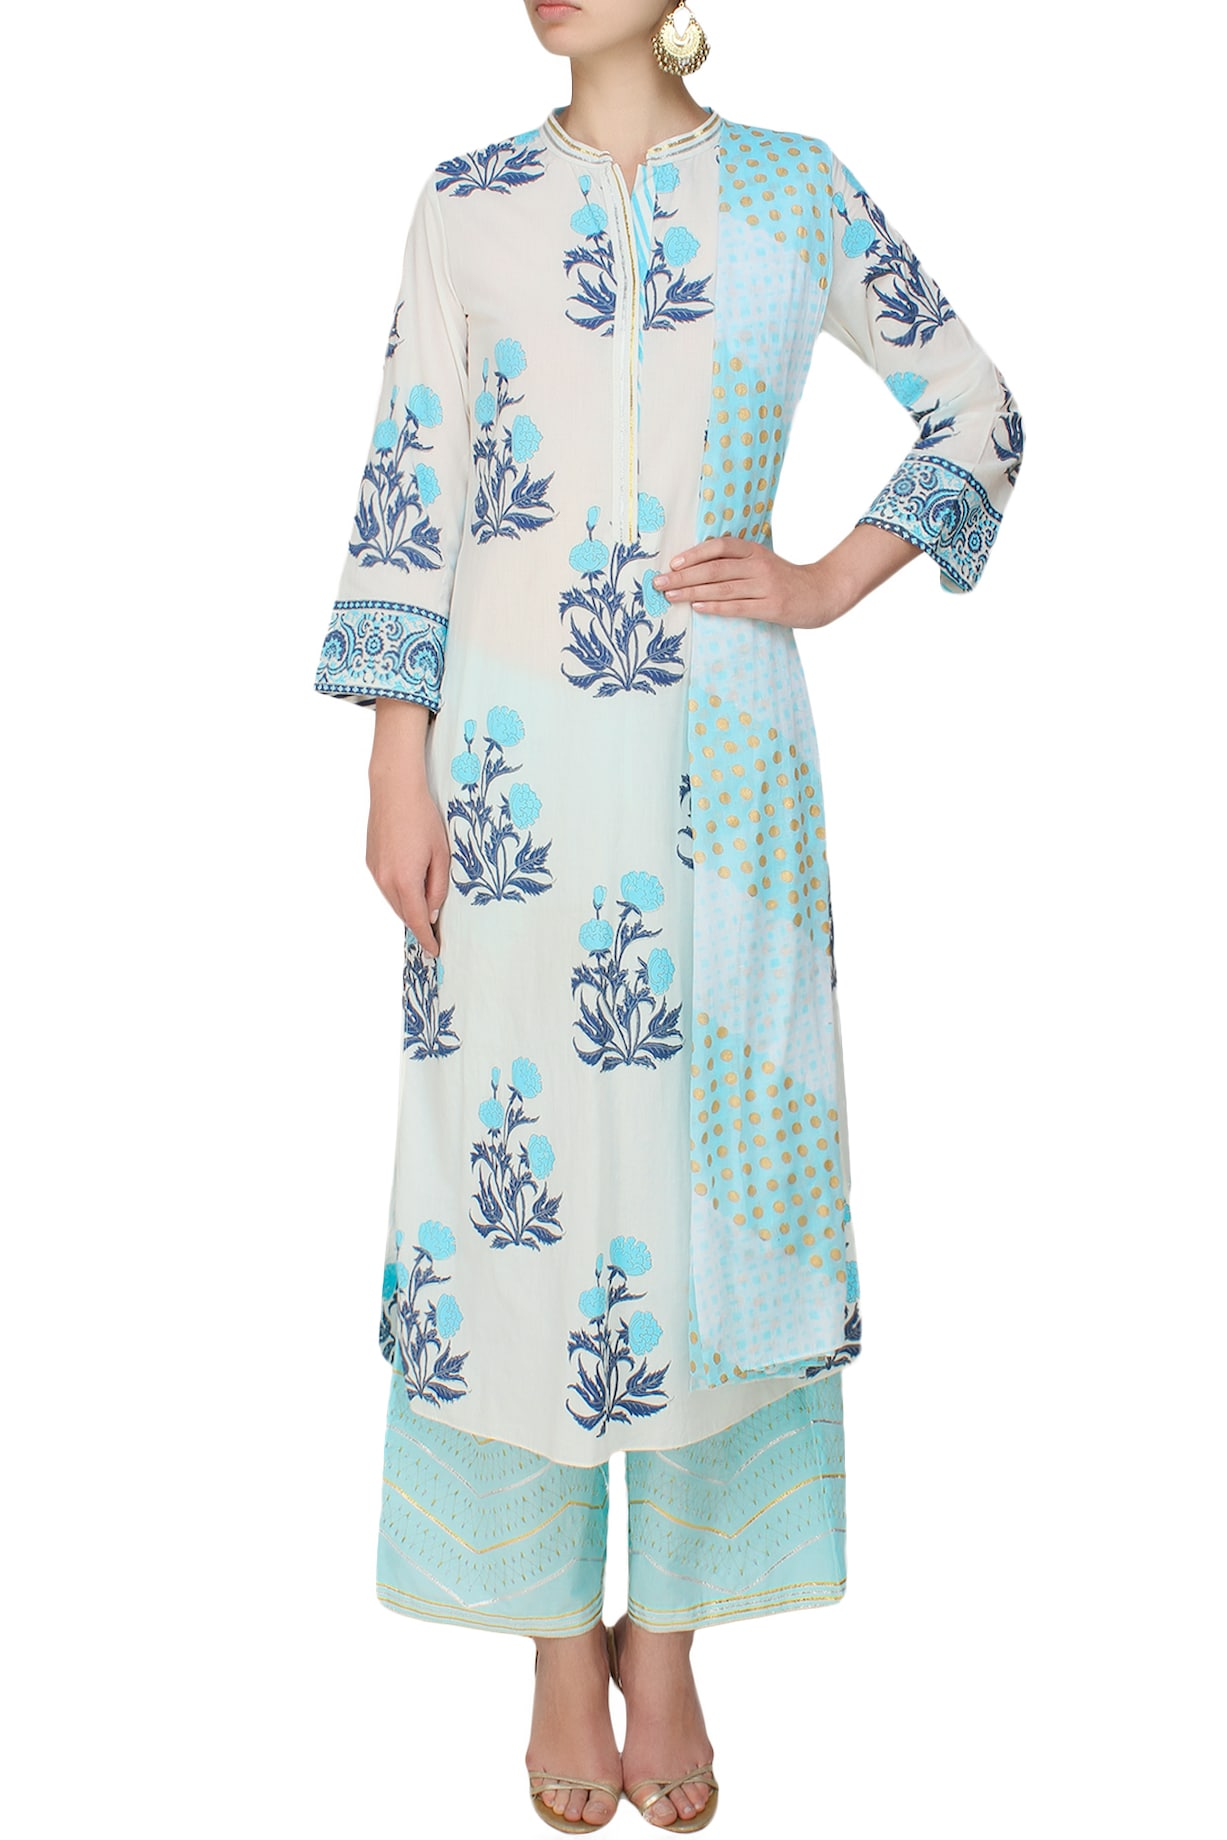 RAJH By Bani & Sheena Kurta Sets